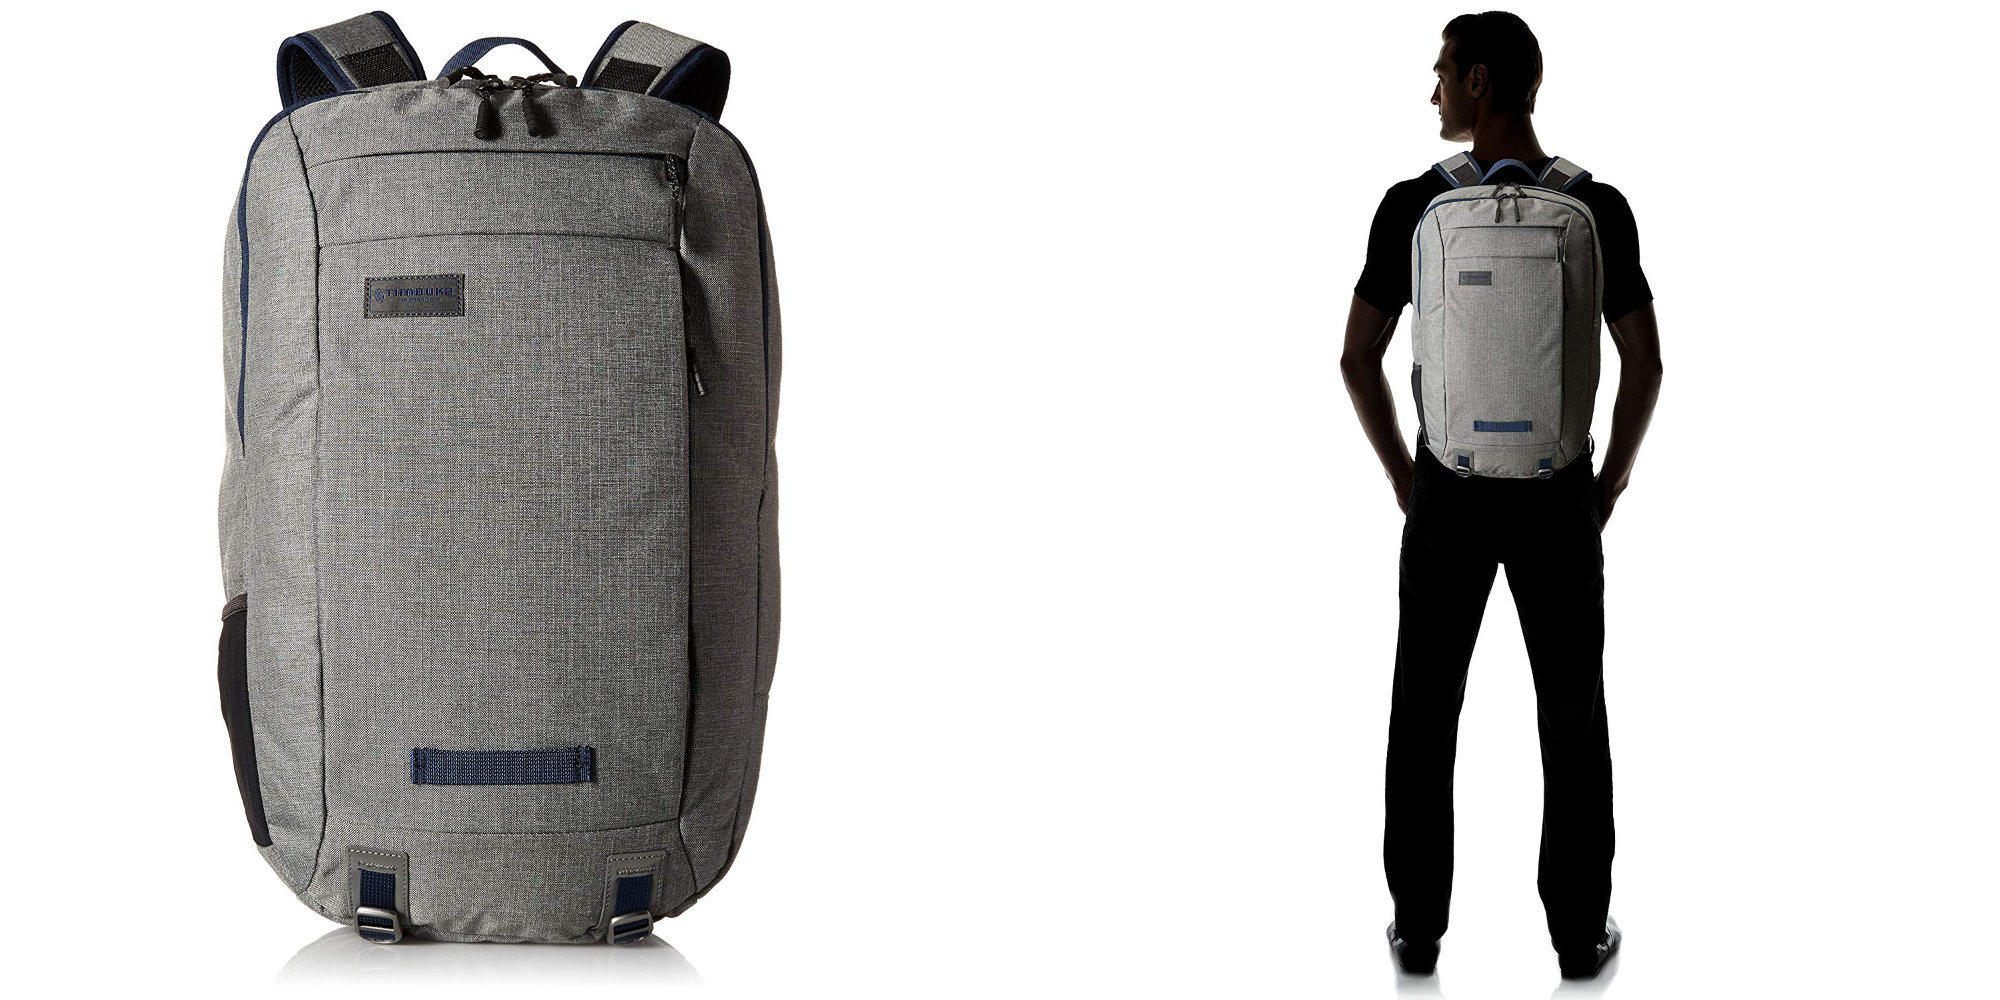 The Timbuk2 Command Backpack is MacBook and iPad-ready: $60 at Amazon (Reg. $90)